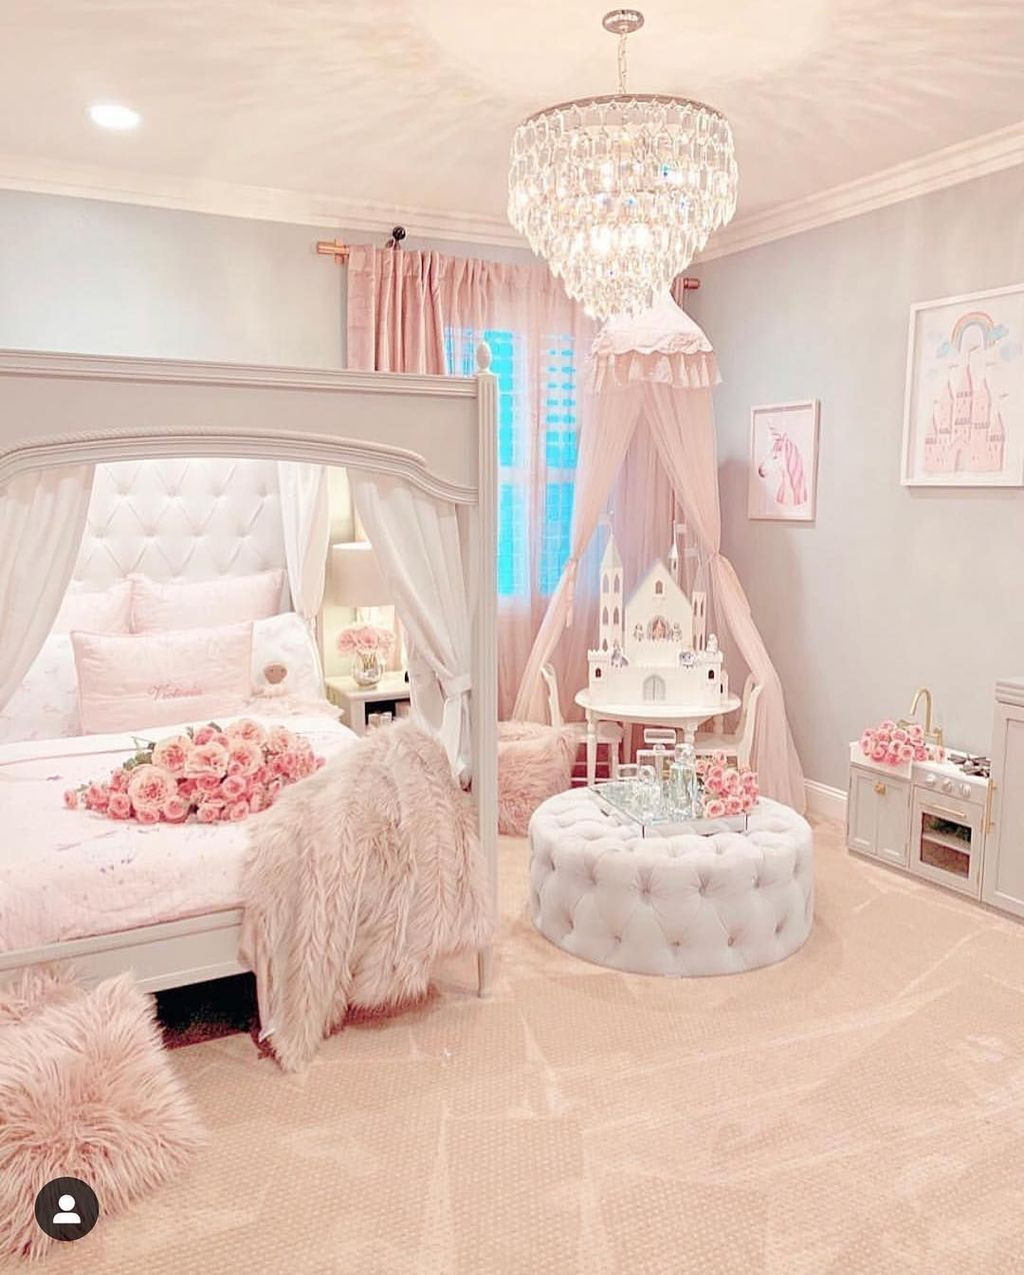 30 Pretty Princess Bedroom Design And Decor Ideas For Your Lovely Girl Trendedecor Pink Bedroom For Girls Girl Bedroom Decor Girly Bedroom